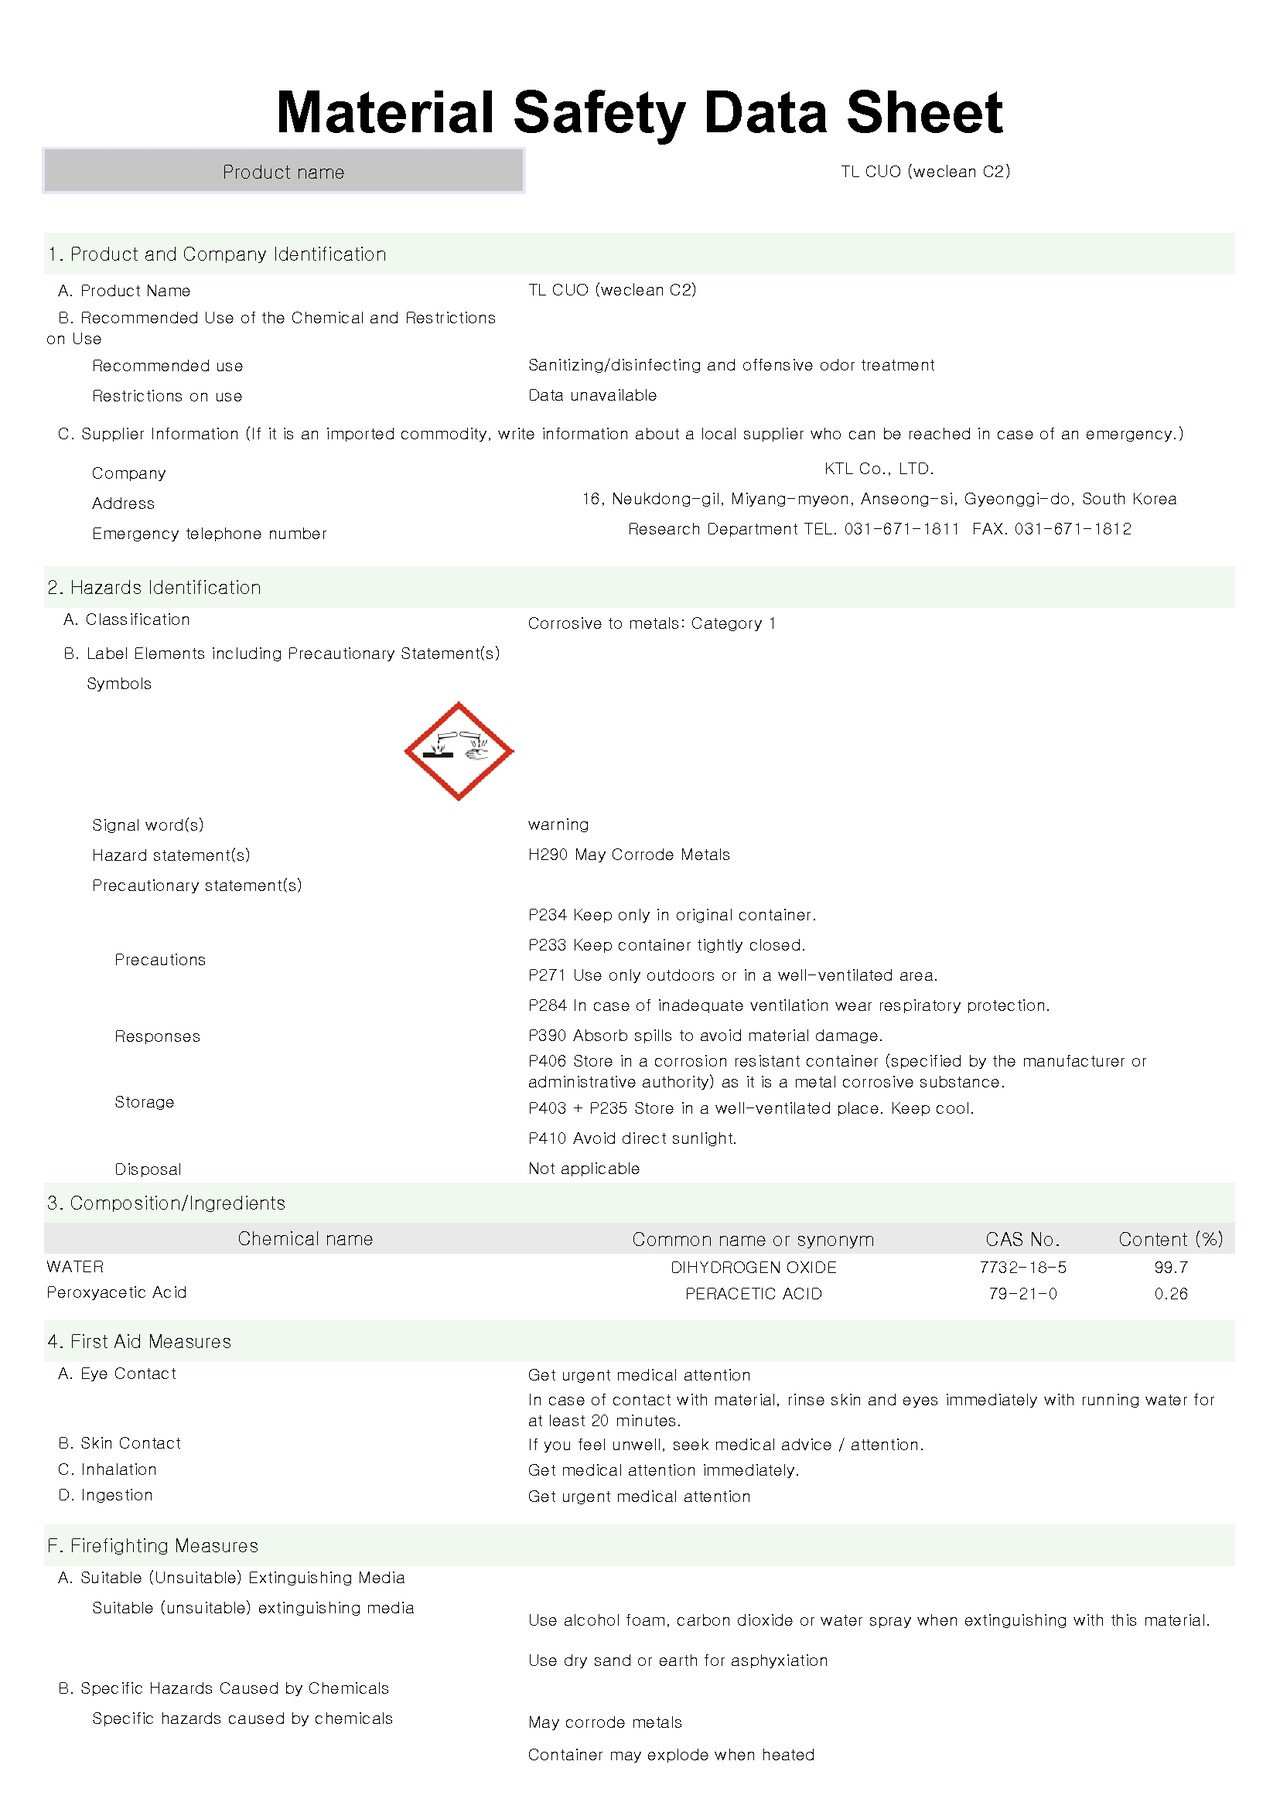 weclean c2 TL cuo MSDS - disinfectant